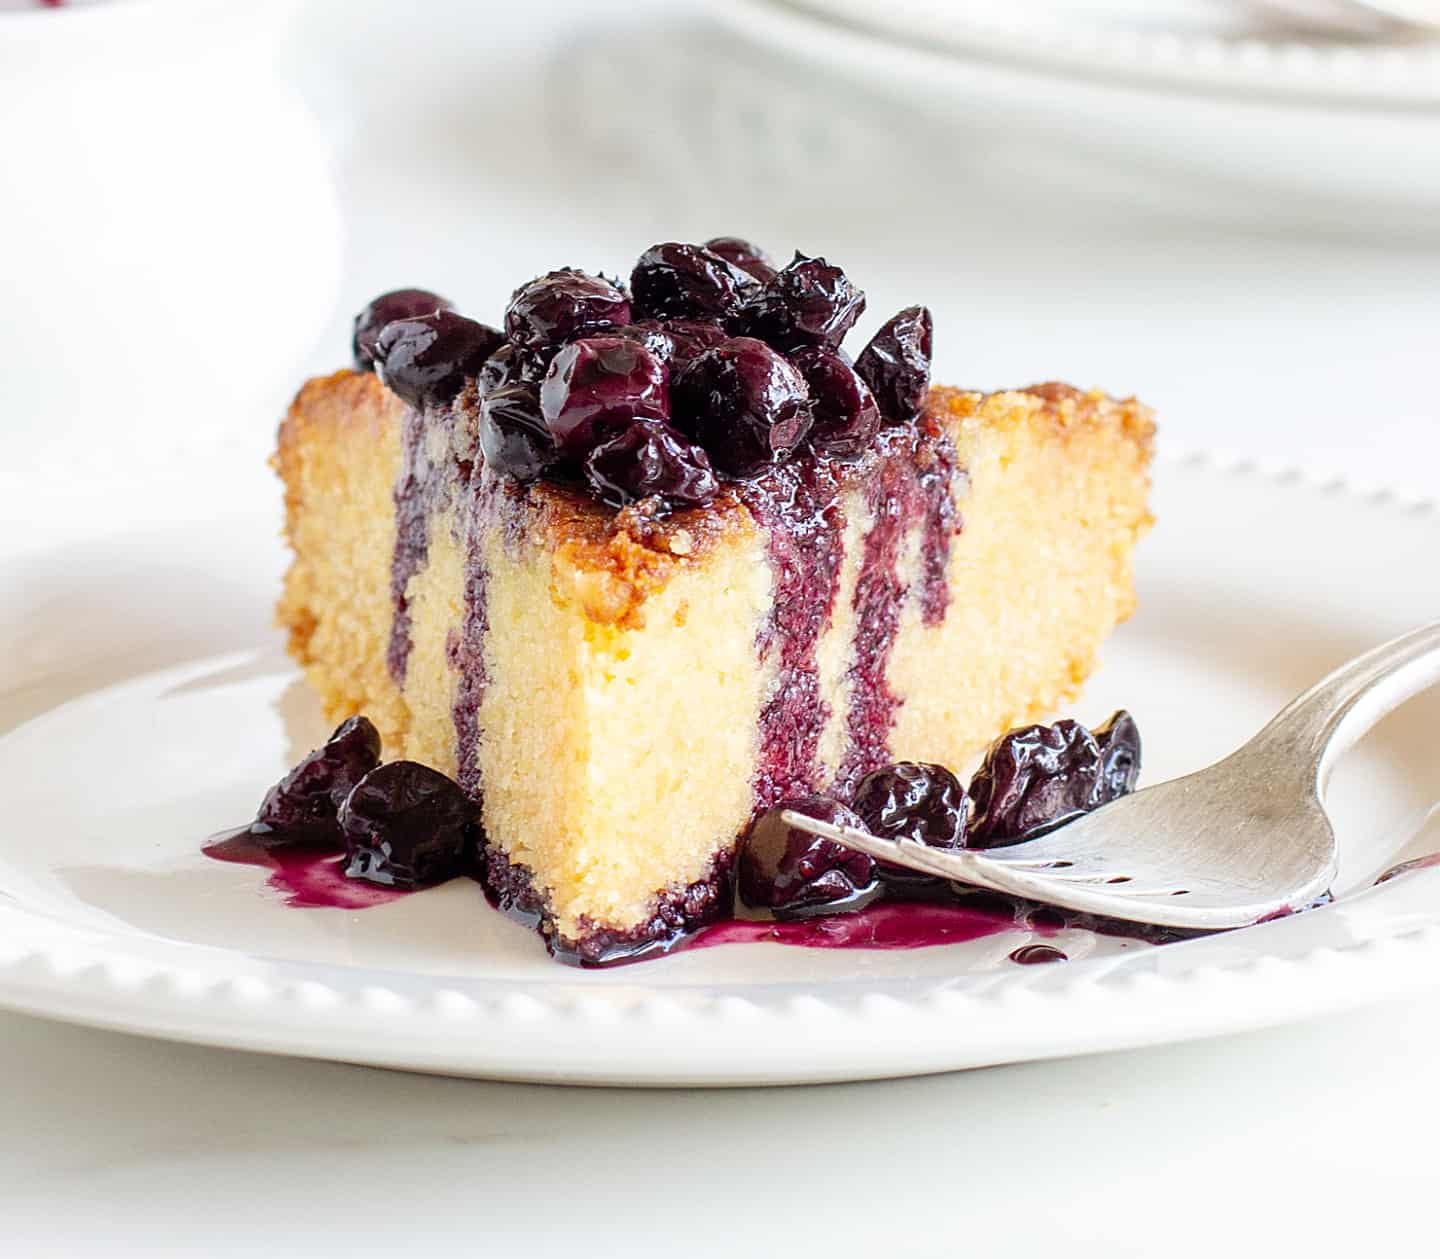 Slice of lemon cake with blueberry sauce on white plate, silver fork, white props on background